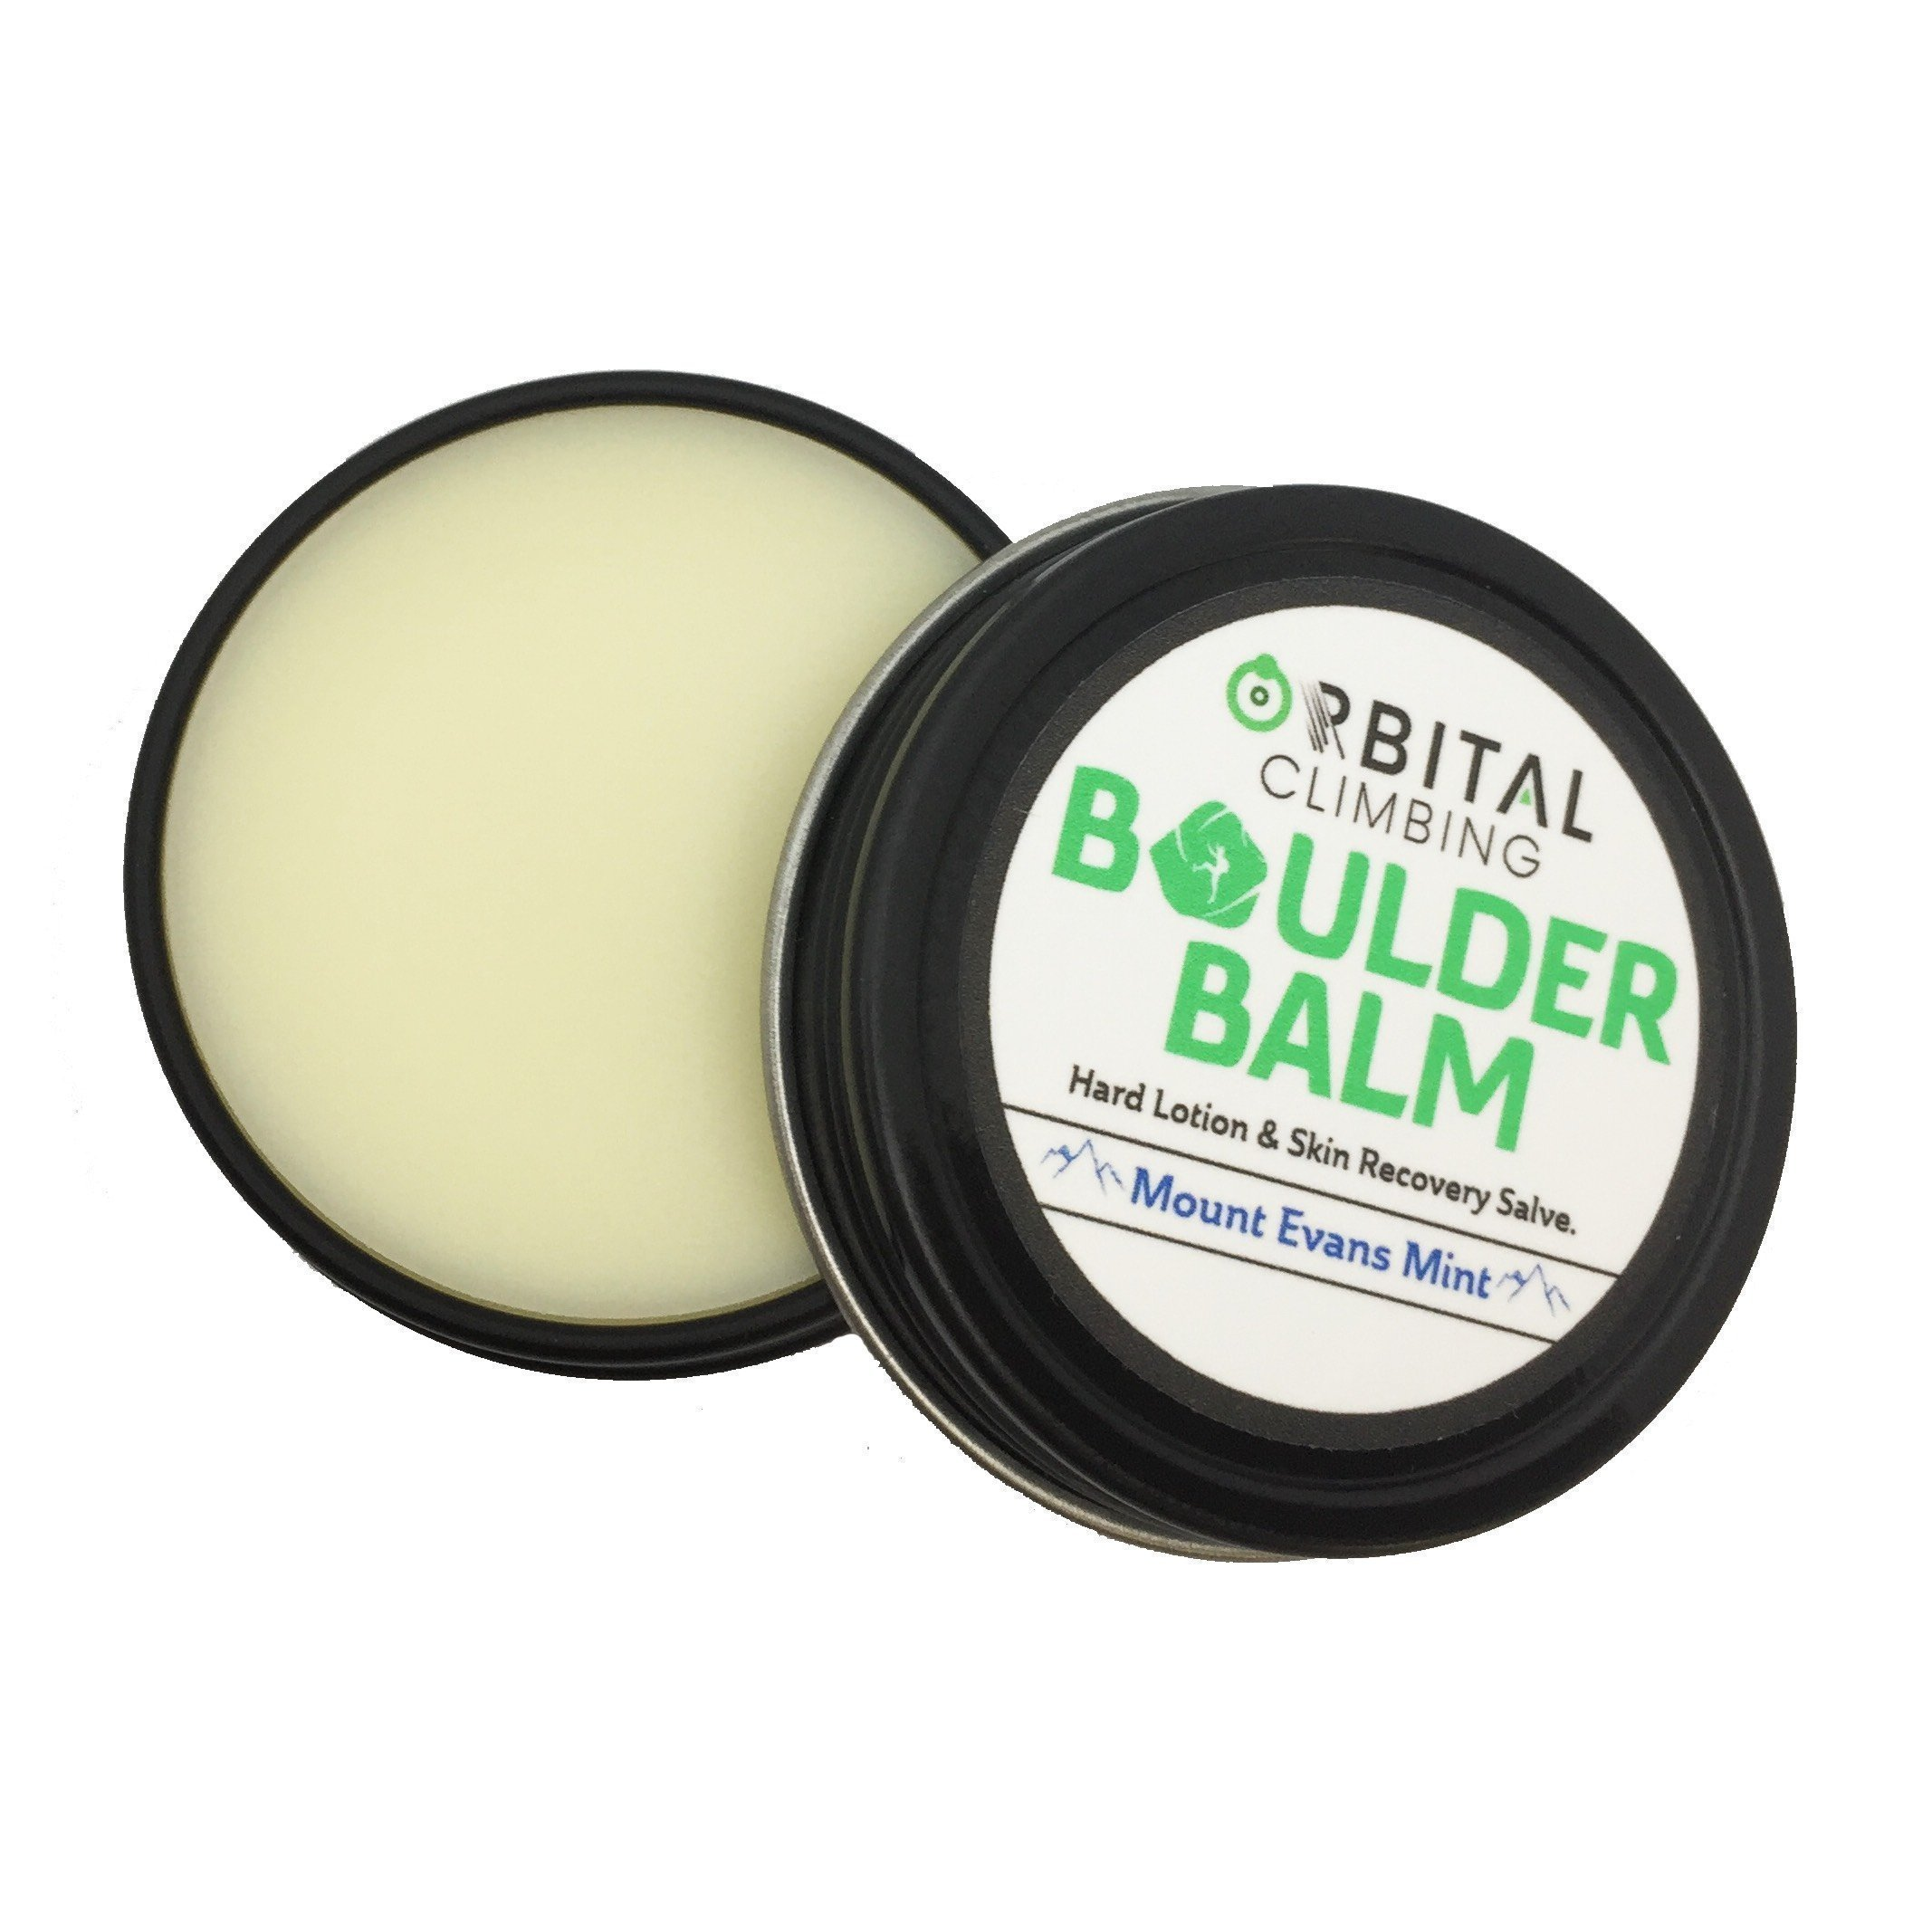 Boulder Balm: Skin Recovery Salve for Hands & Beard Conditioning (Mount Evans Mint Scent) 1oz Plant Based Herb Infused Formula Helps Heal Dry Skin & Keeps Skin Elastic - Fast Absorbing!